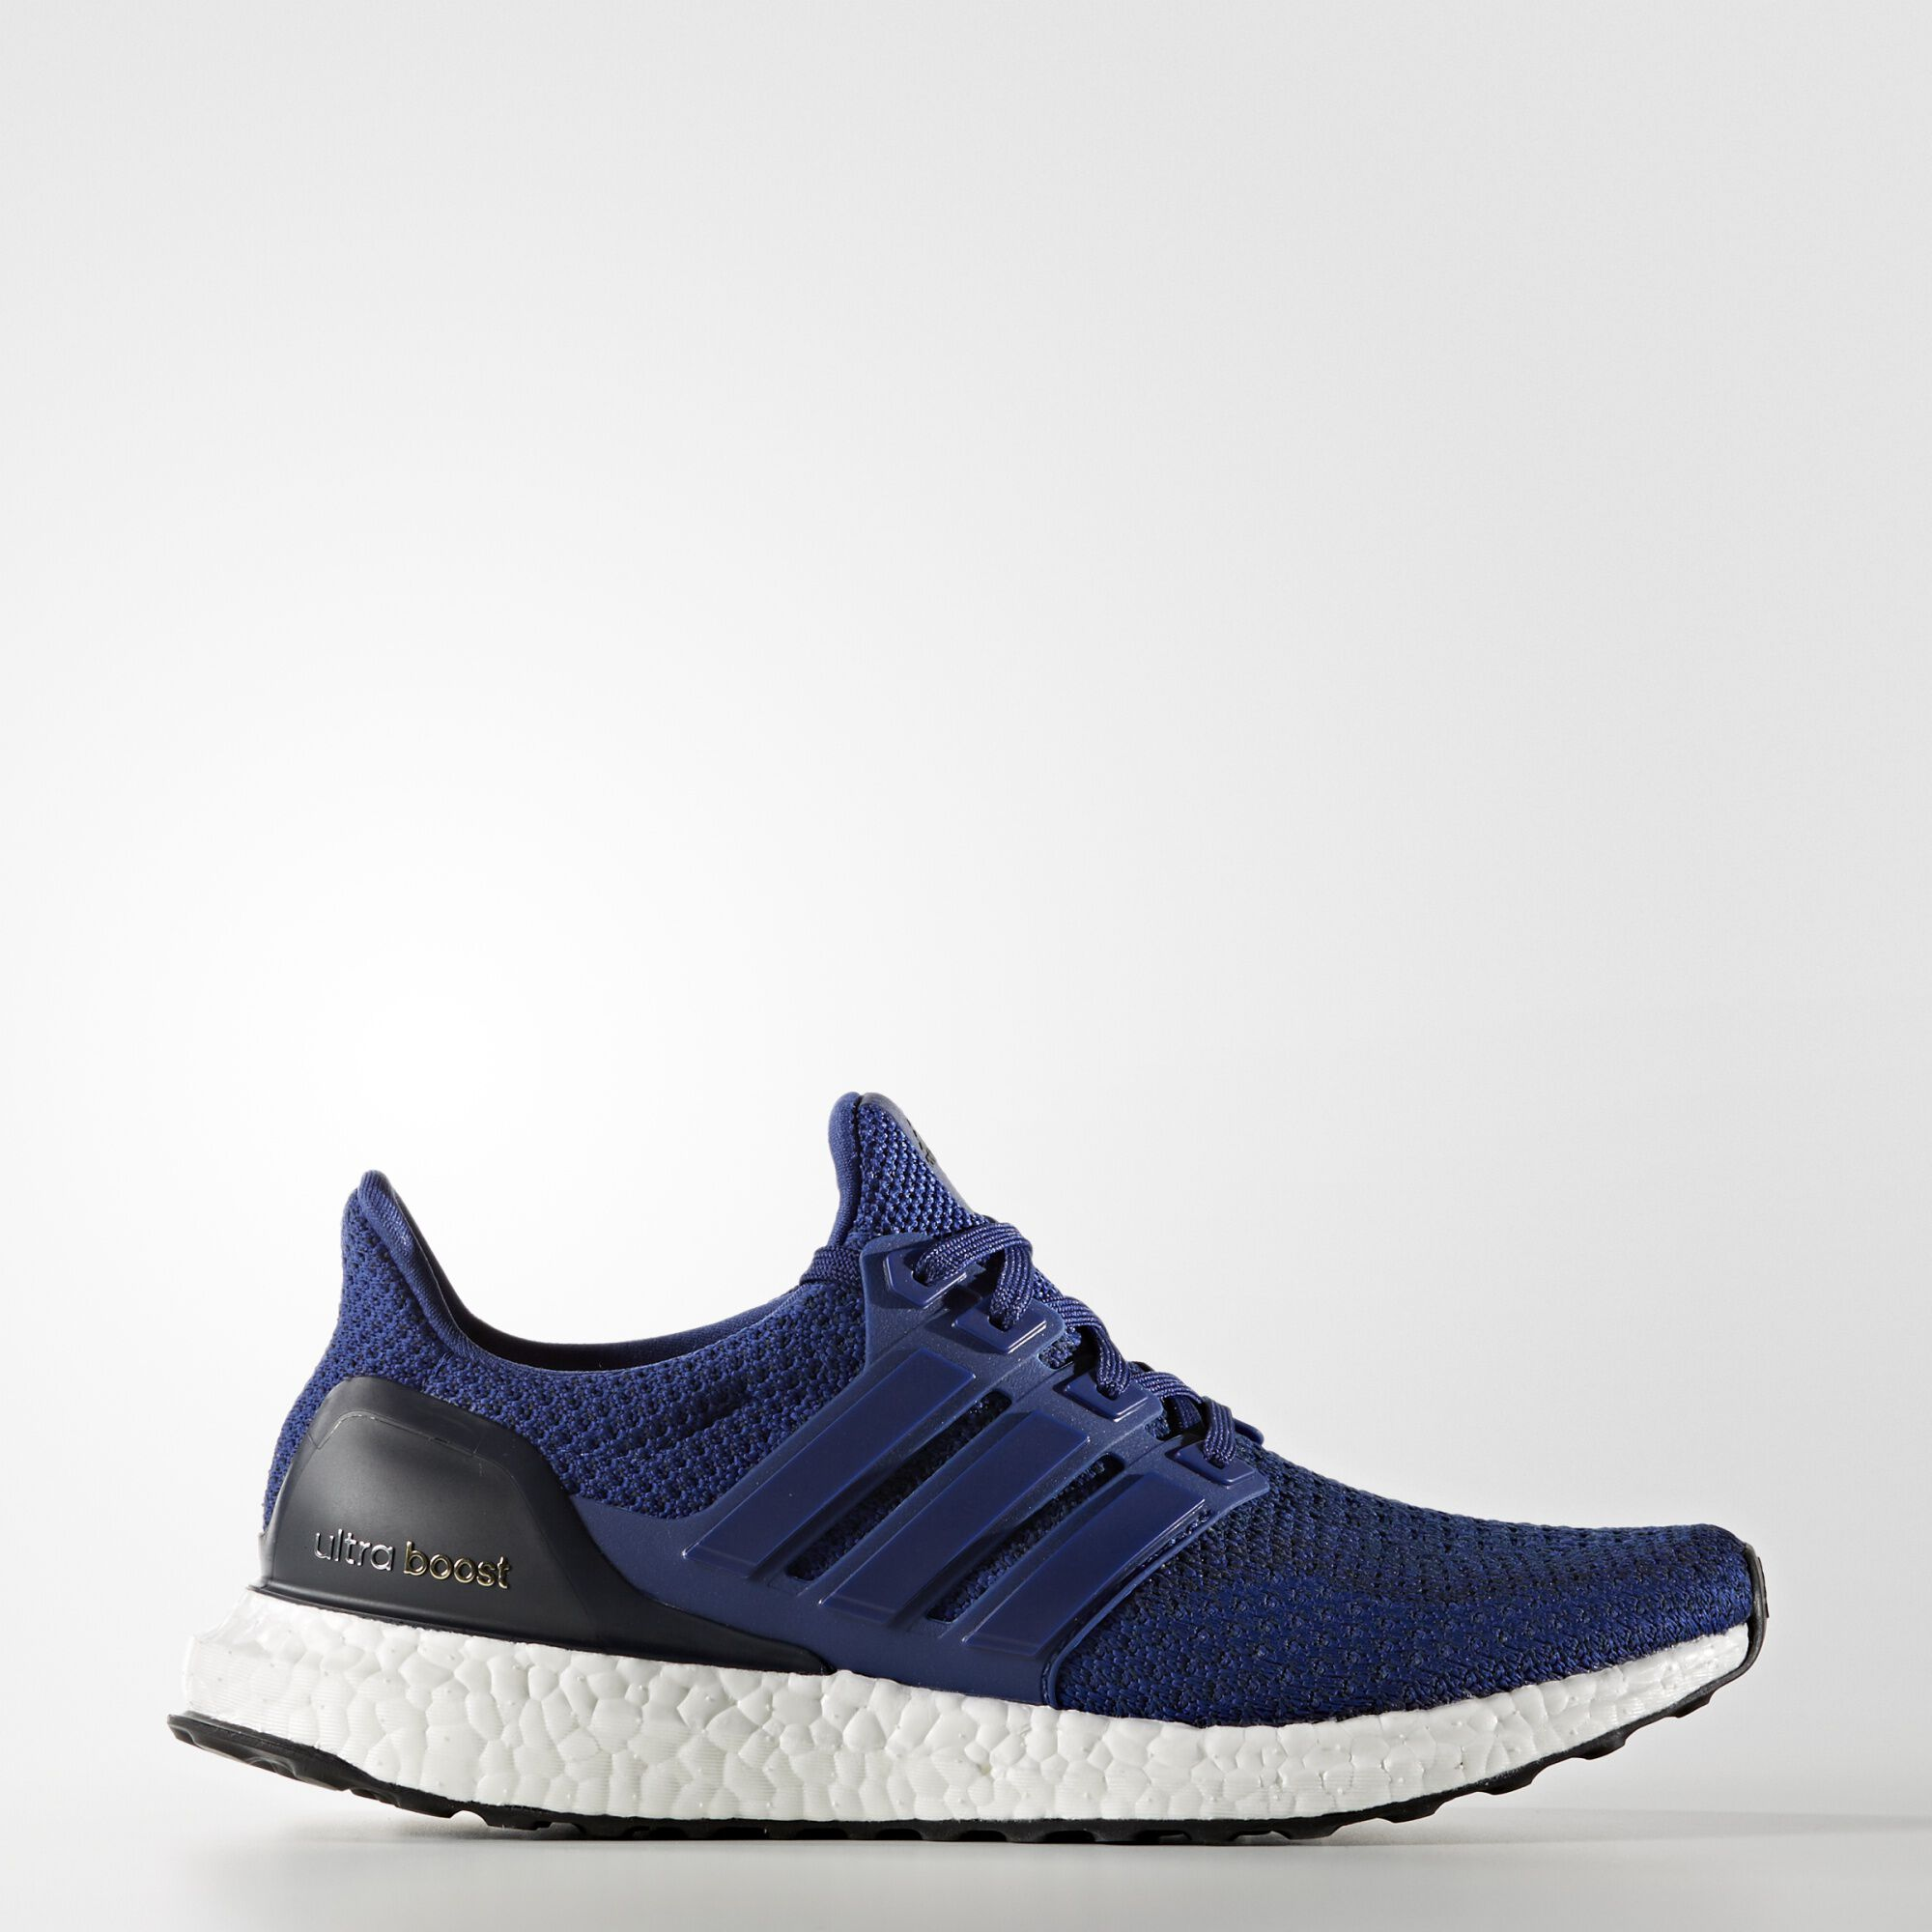 Adidas Ultra Boost Colors